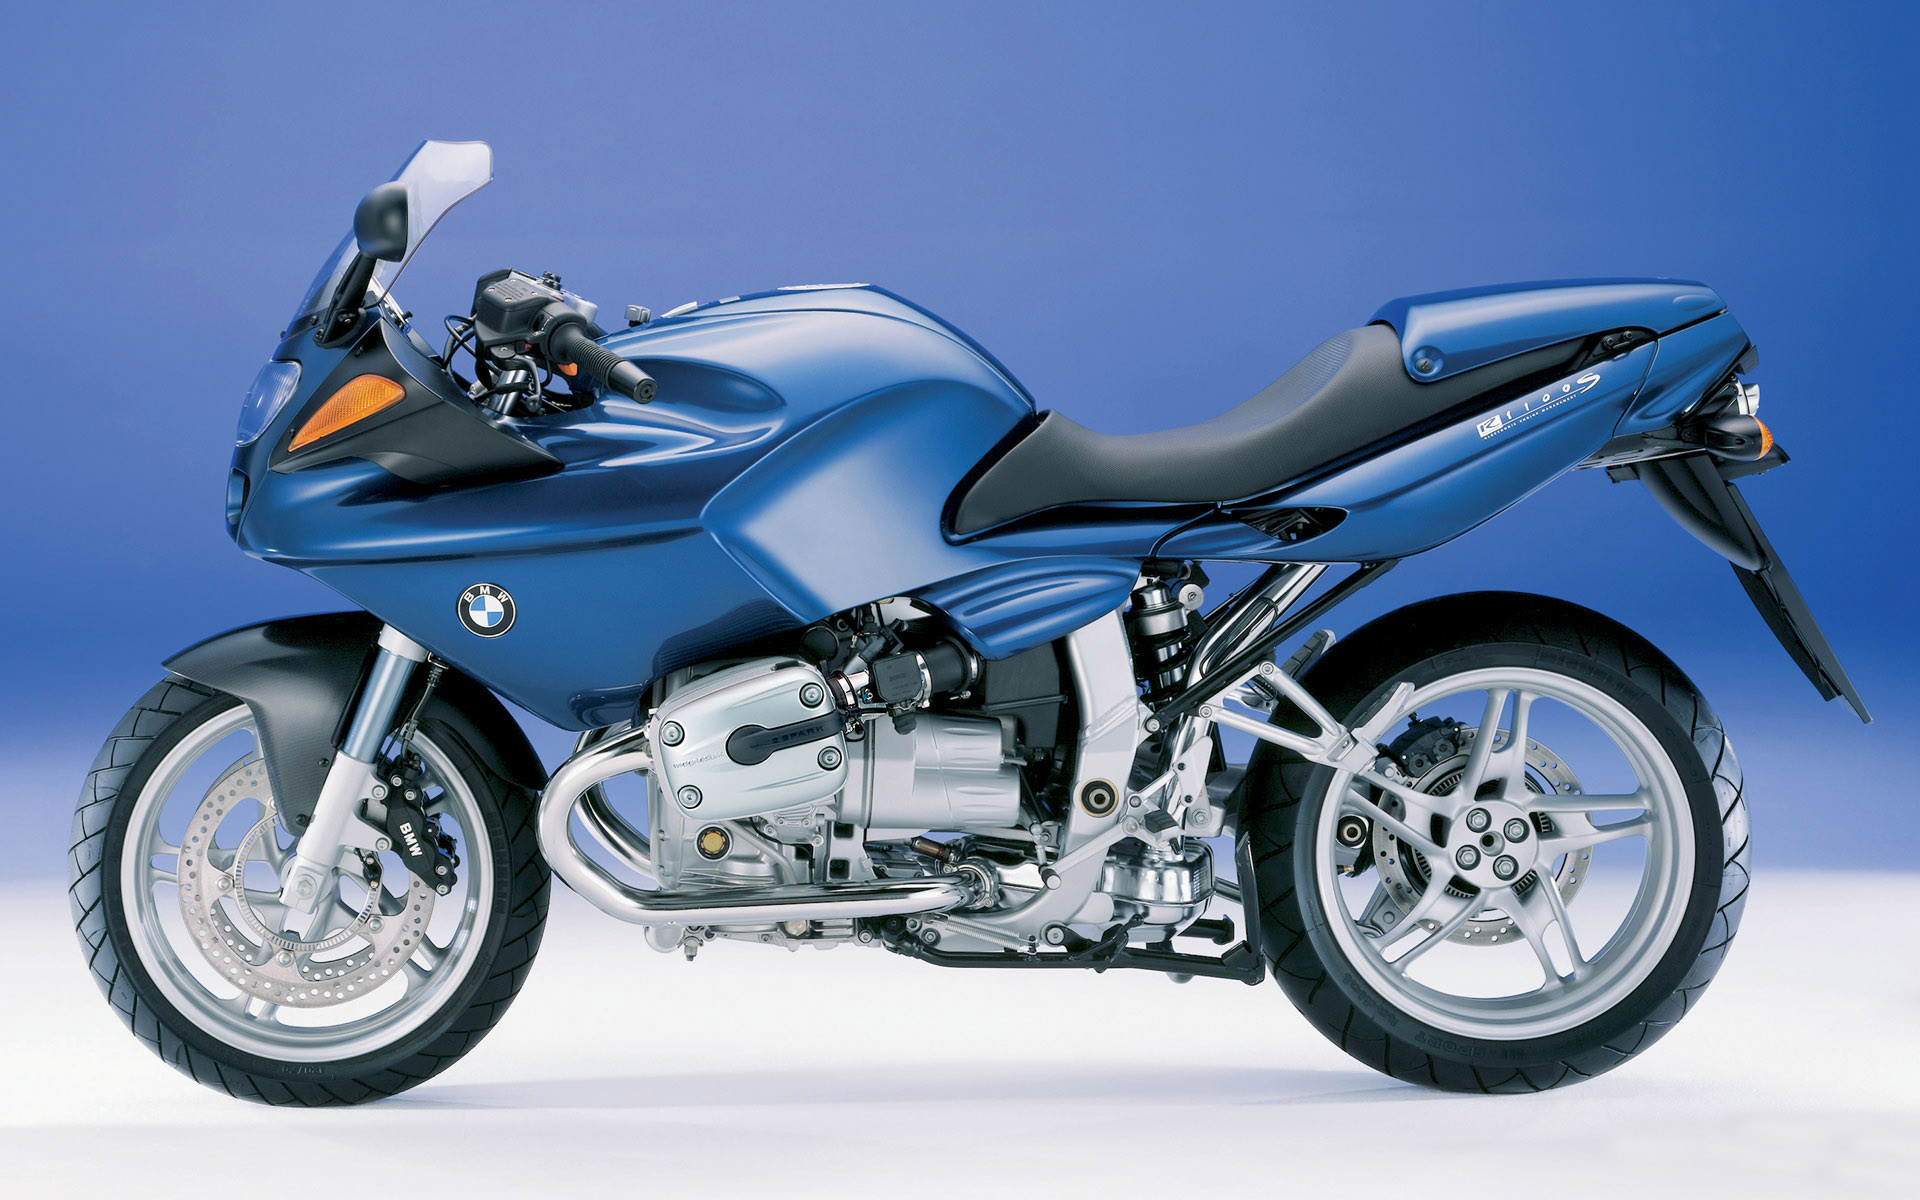 bmw motorcycle wide hd bmw wallpapers images desktop download full 1920x1200